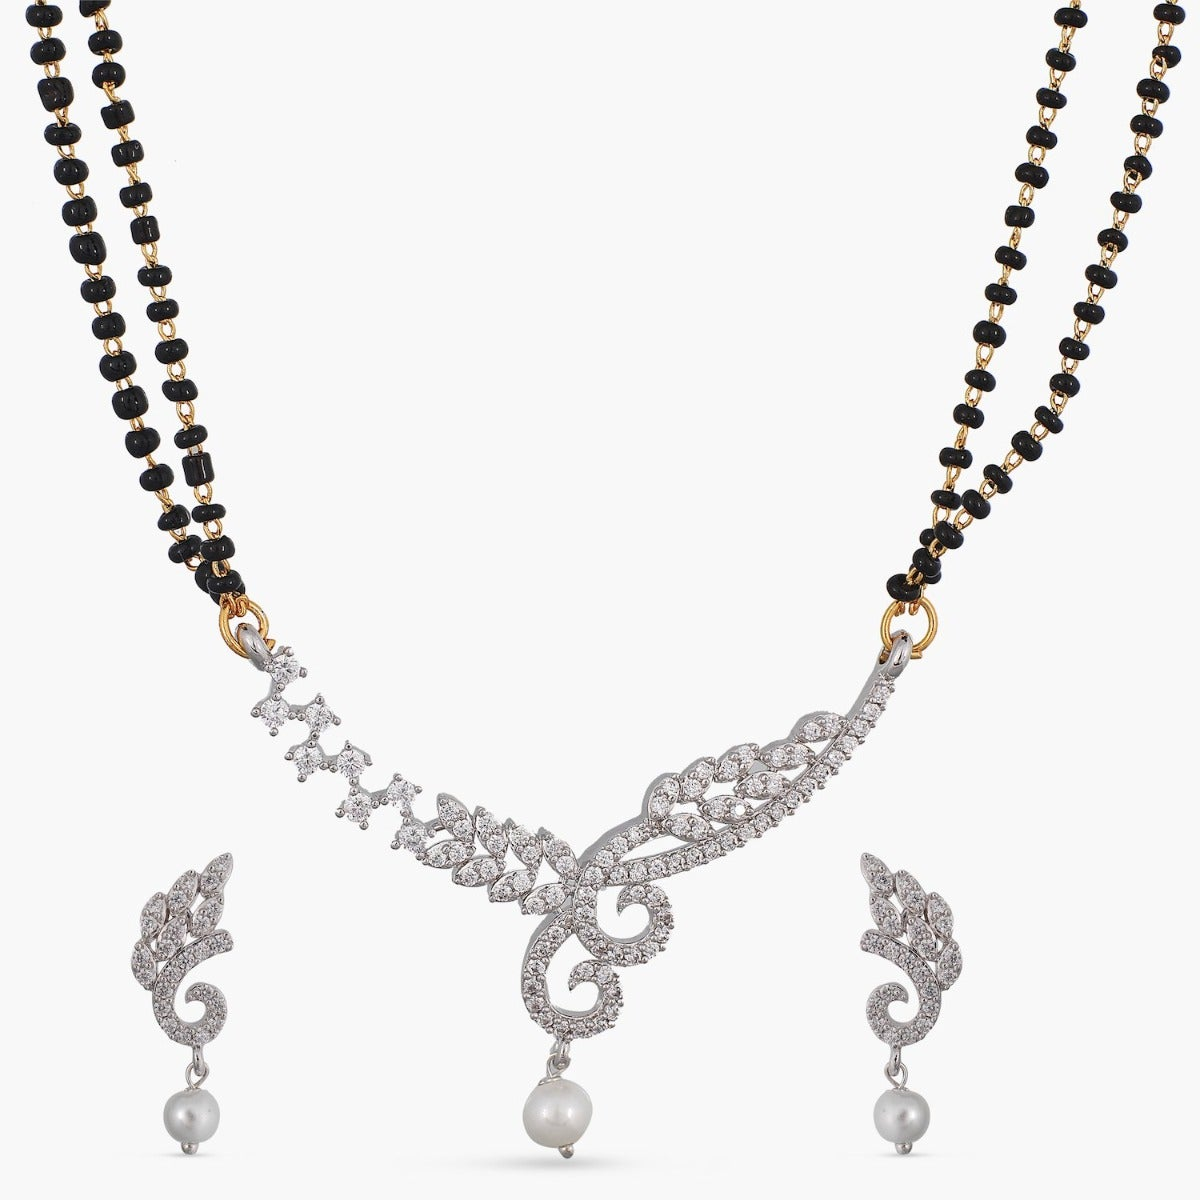 Aami Black Beads Necklace Set